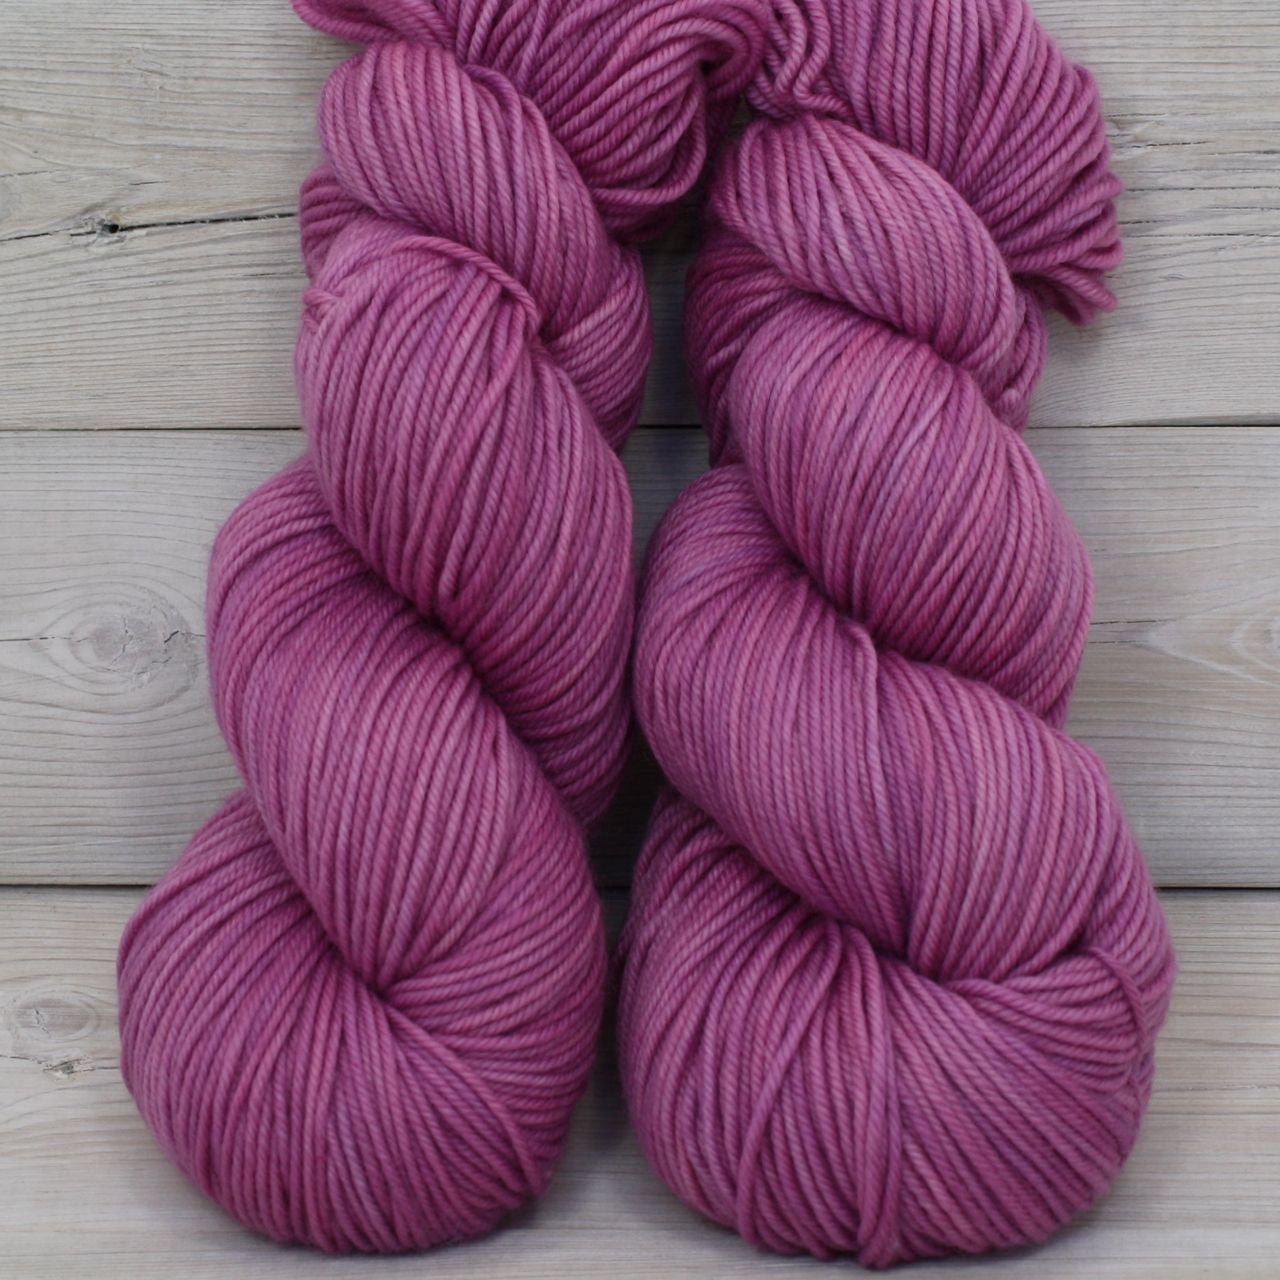 Calypso Yarn | Colorway: Radiant Orchid